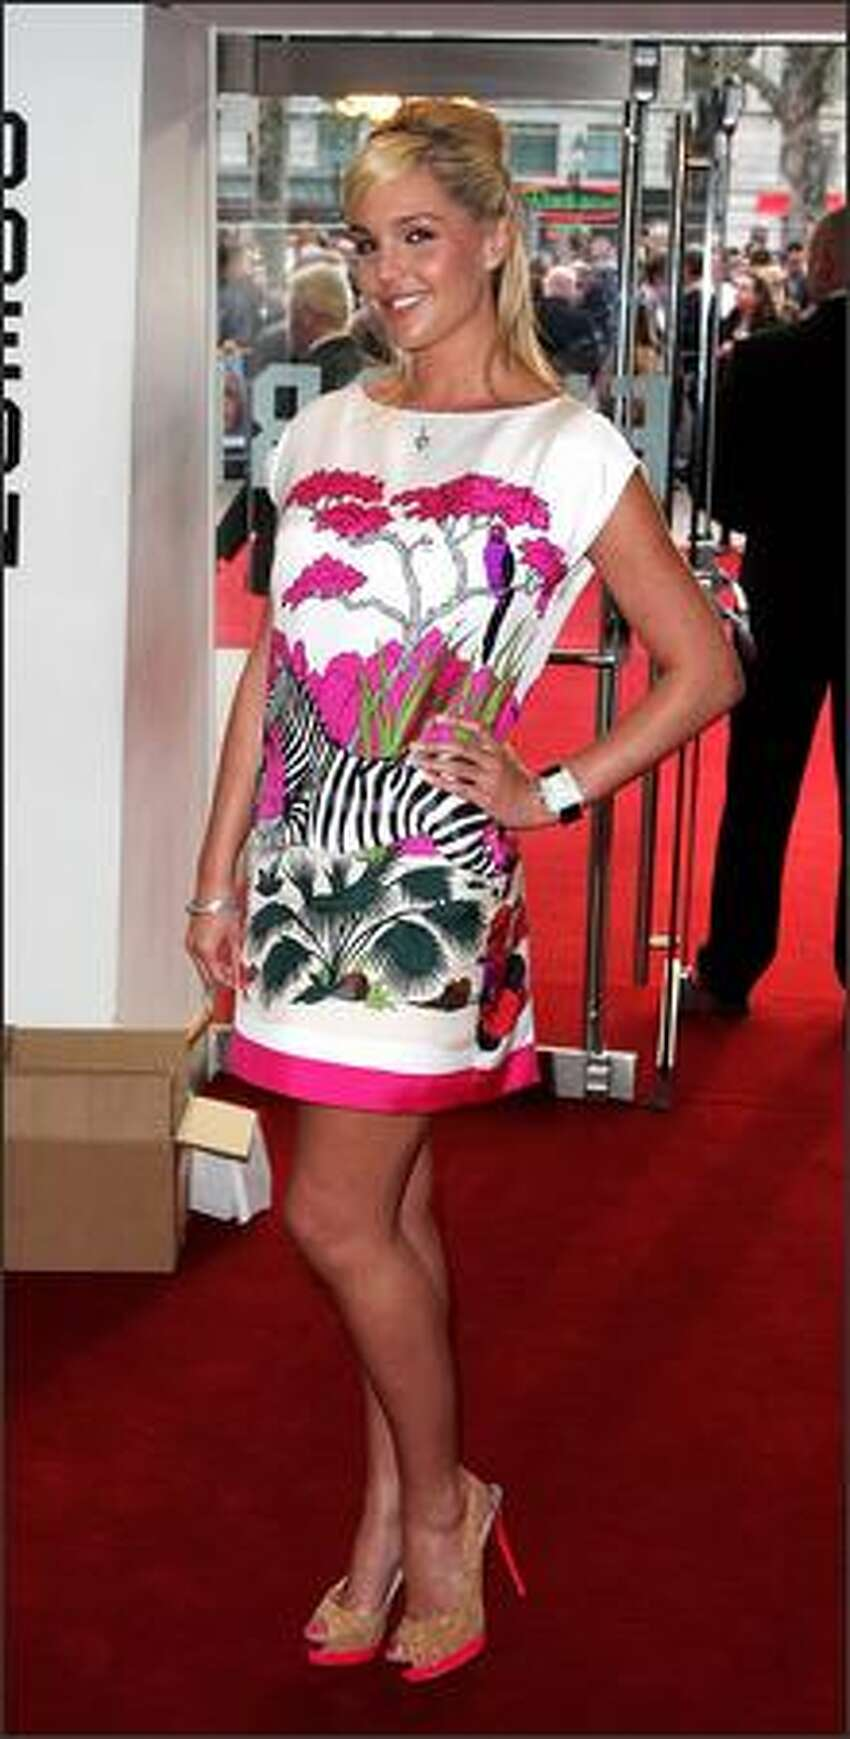 Danielle Lloyd arrives at the World Charity premiere of 'Three And Out' at the Odeon cinema, Leicester Square on Monday in London, England.